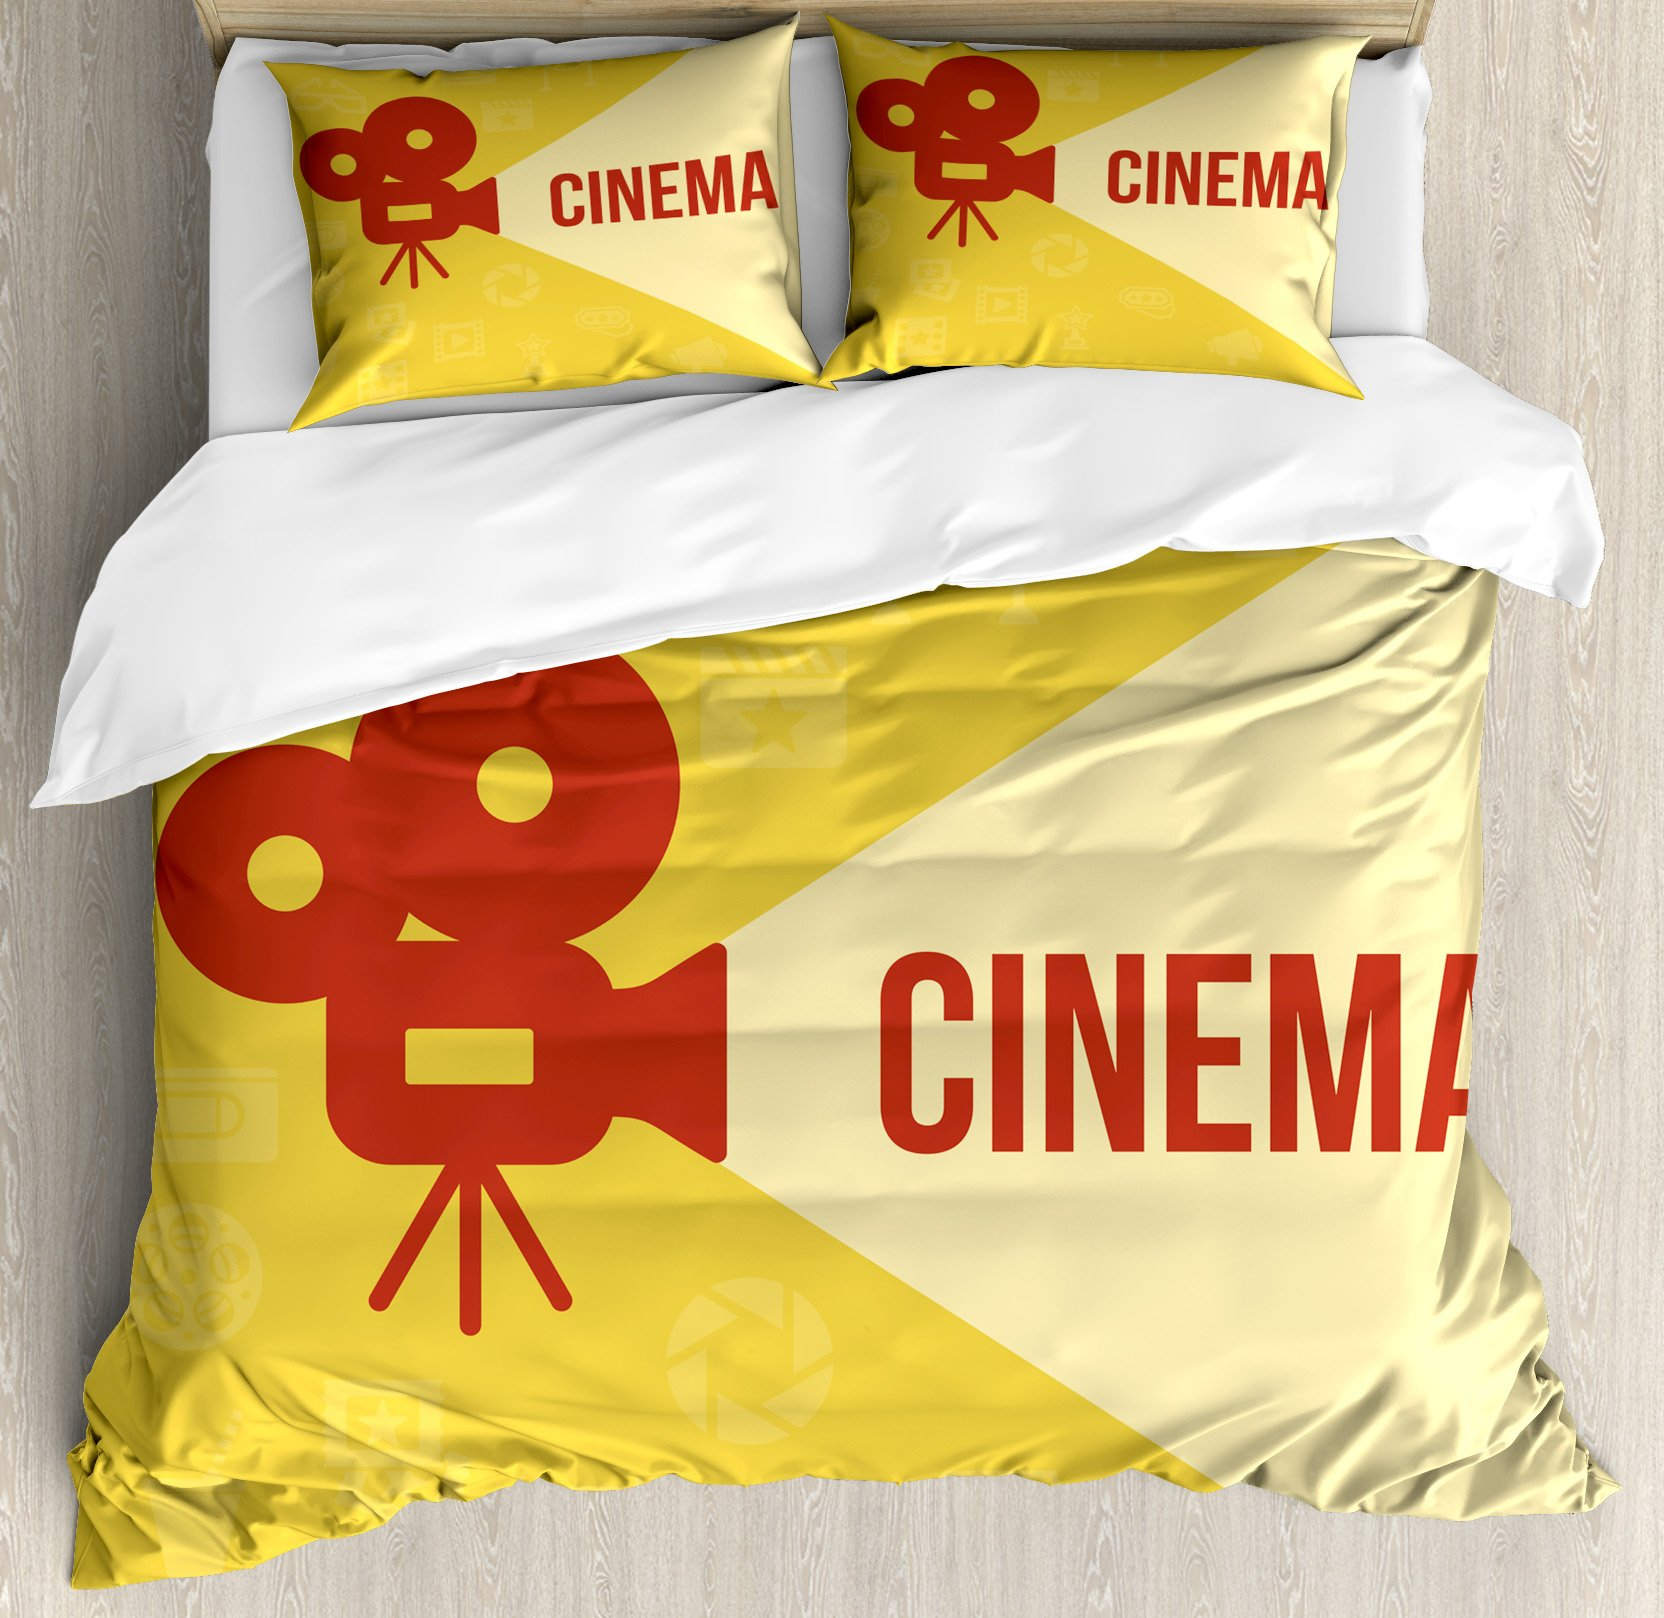 Ambesonne Movie Theater Queen Size Duvet Cover Set, Projector Silhouette with Cinema Quote Movie Symbols Background, Decorative 3 Piece Bedding Set with 2 Pillow Shams, Dark Coral Beige Yellow